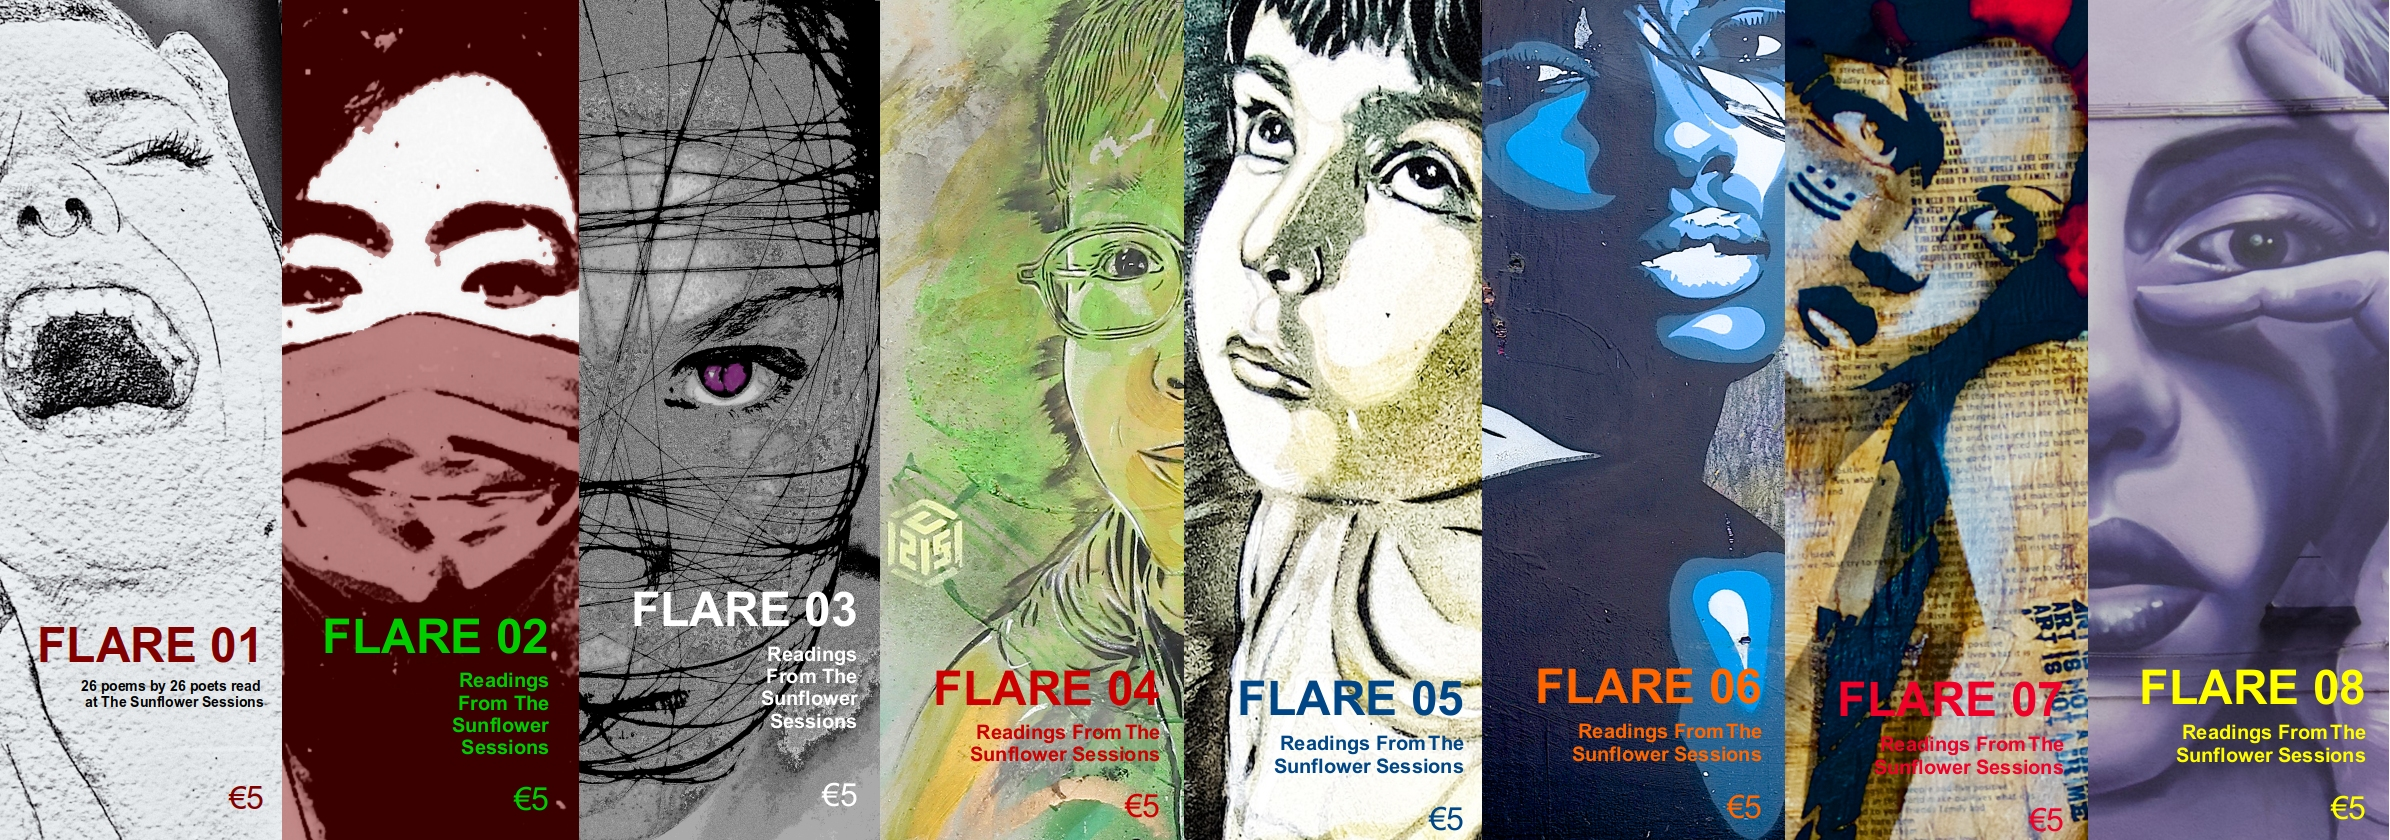 Covers of FLARE 01 to 08. The cover images show details from various street murals.